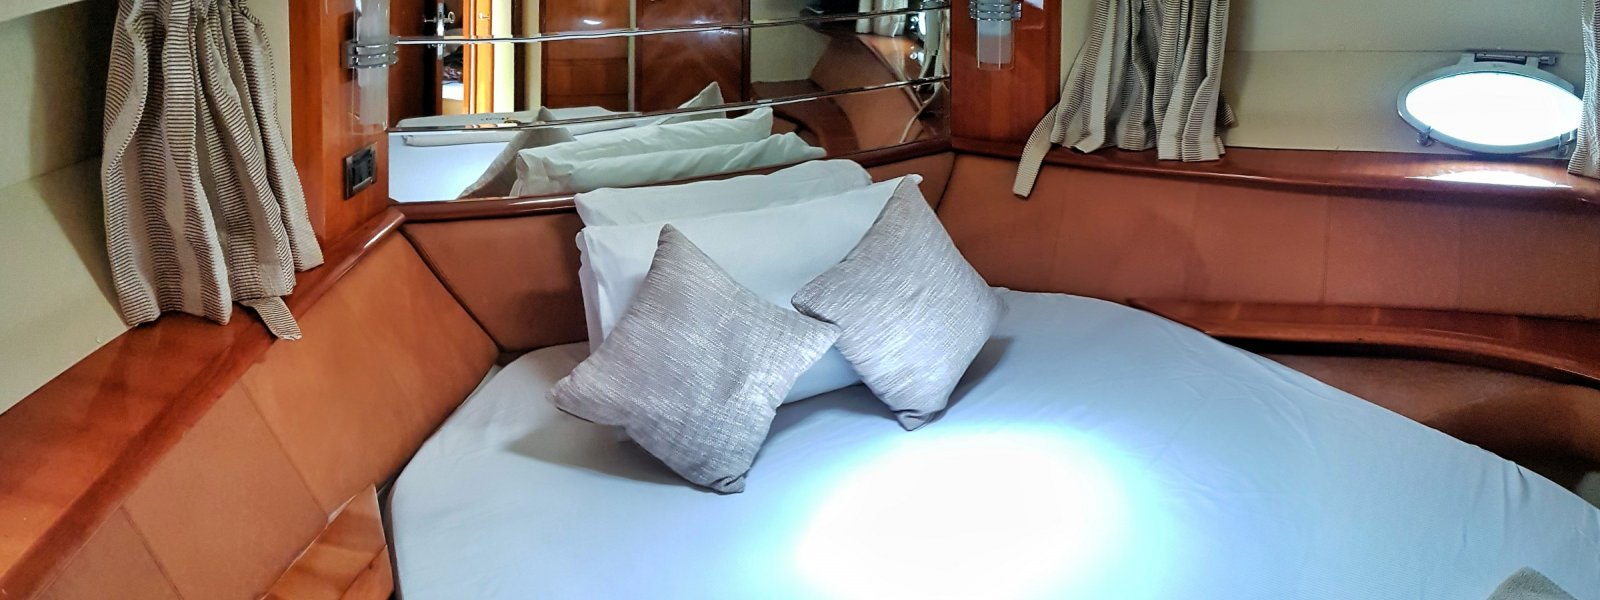 Cozmo 50 Seamaster Yacht luxury bed room.